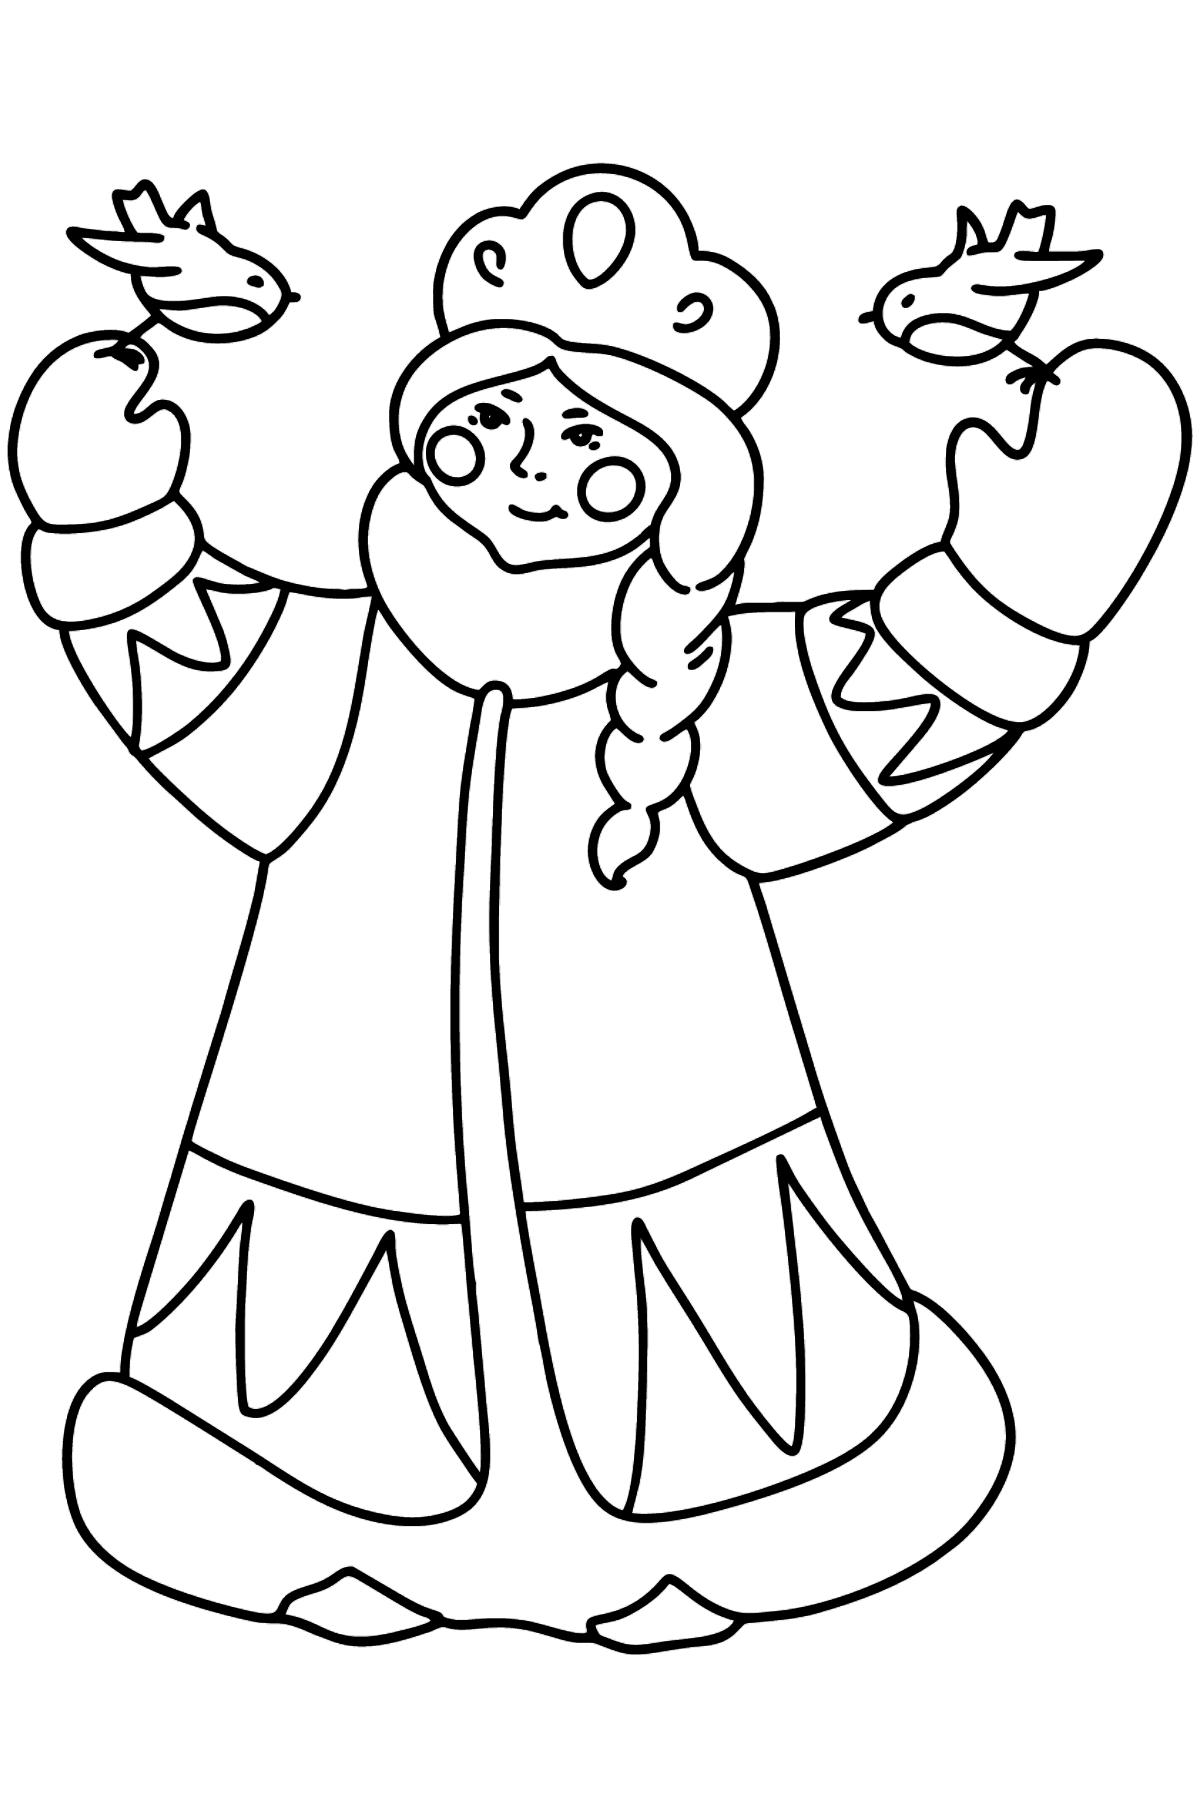 Snow maiden with birds coloring page - Coloring Pages for Kids